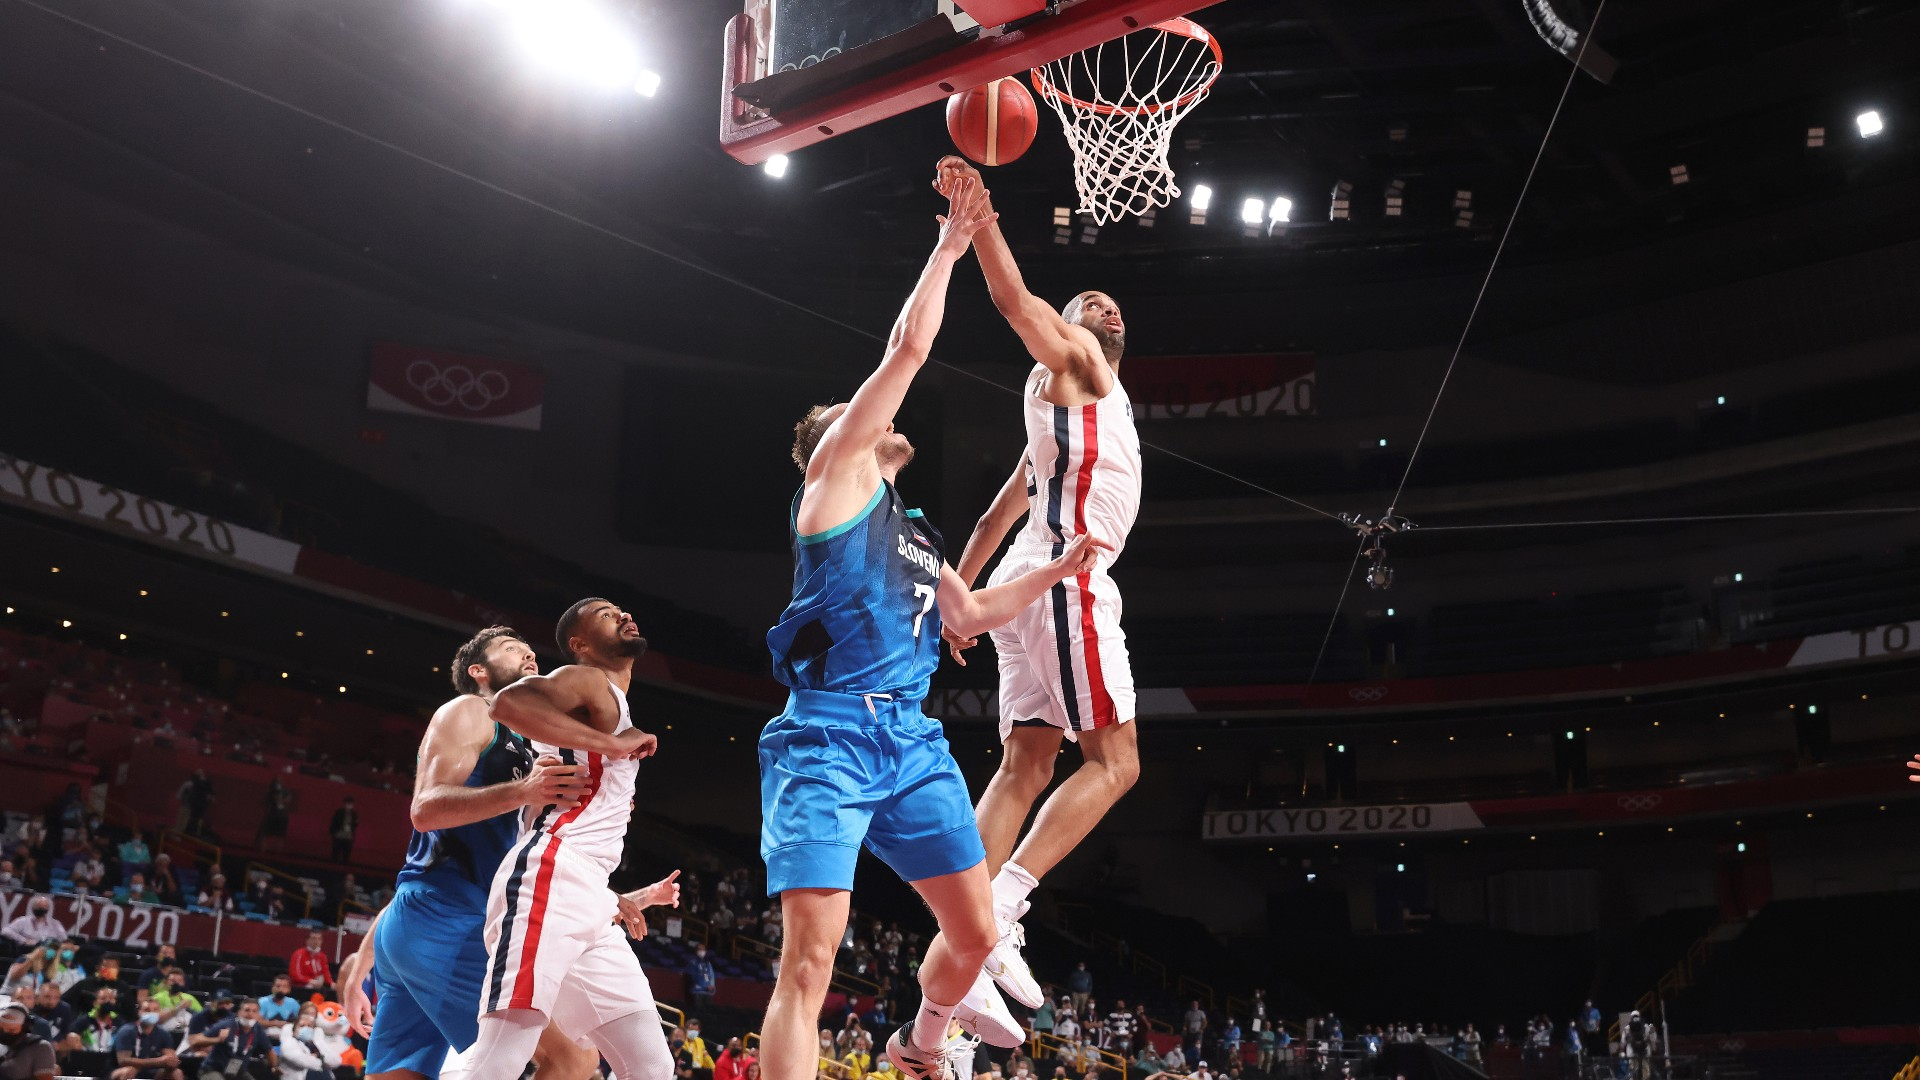 nicolas batums late block stuns luka doncic slovenia as france advances to olympic gold medal game